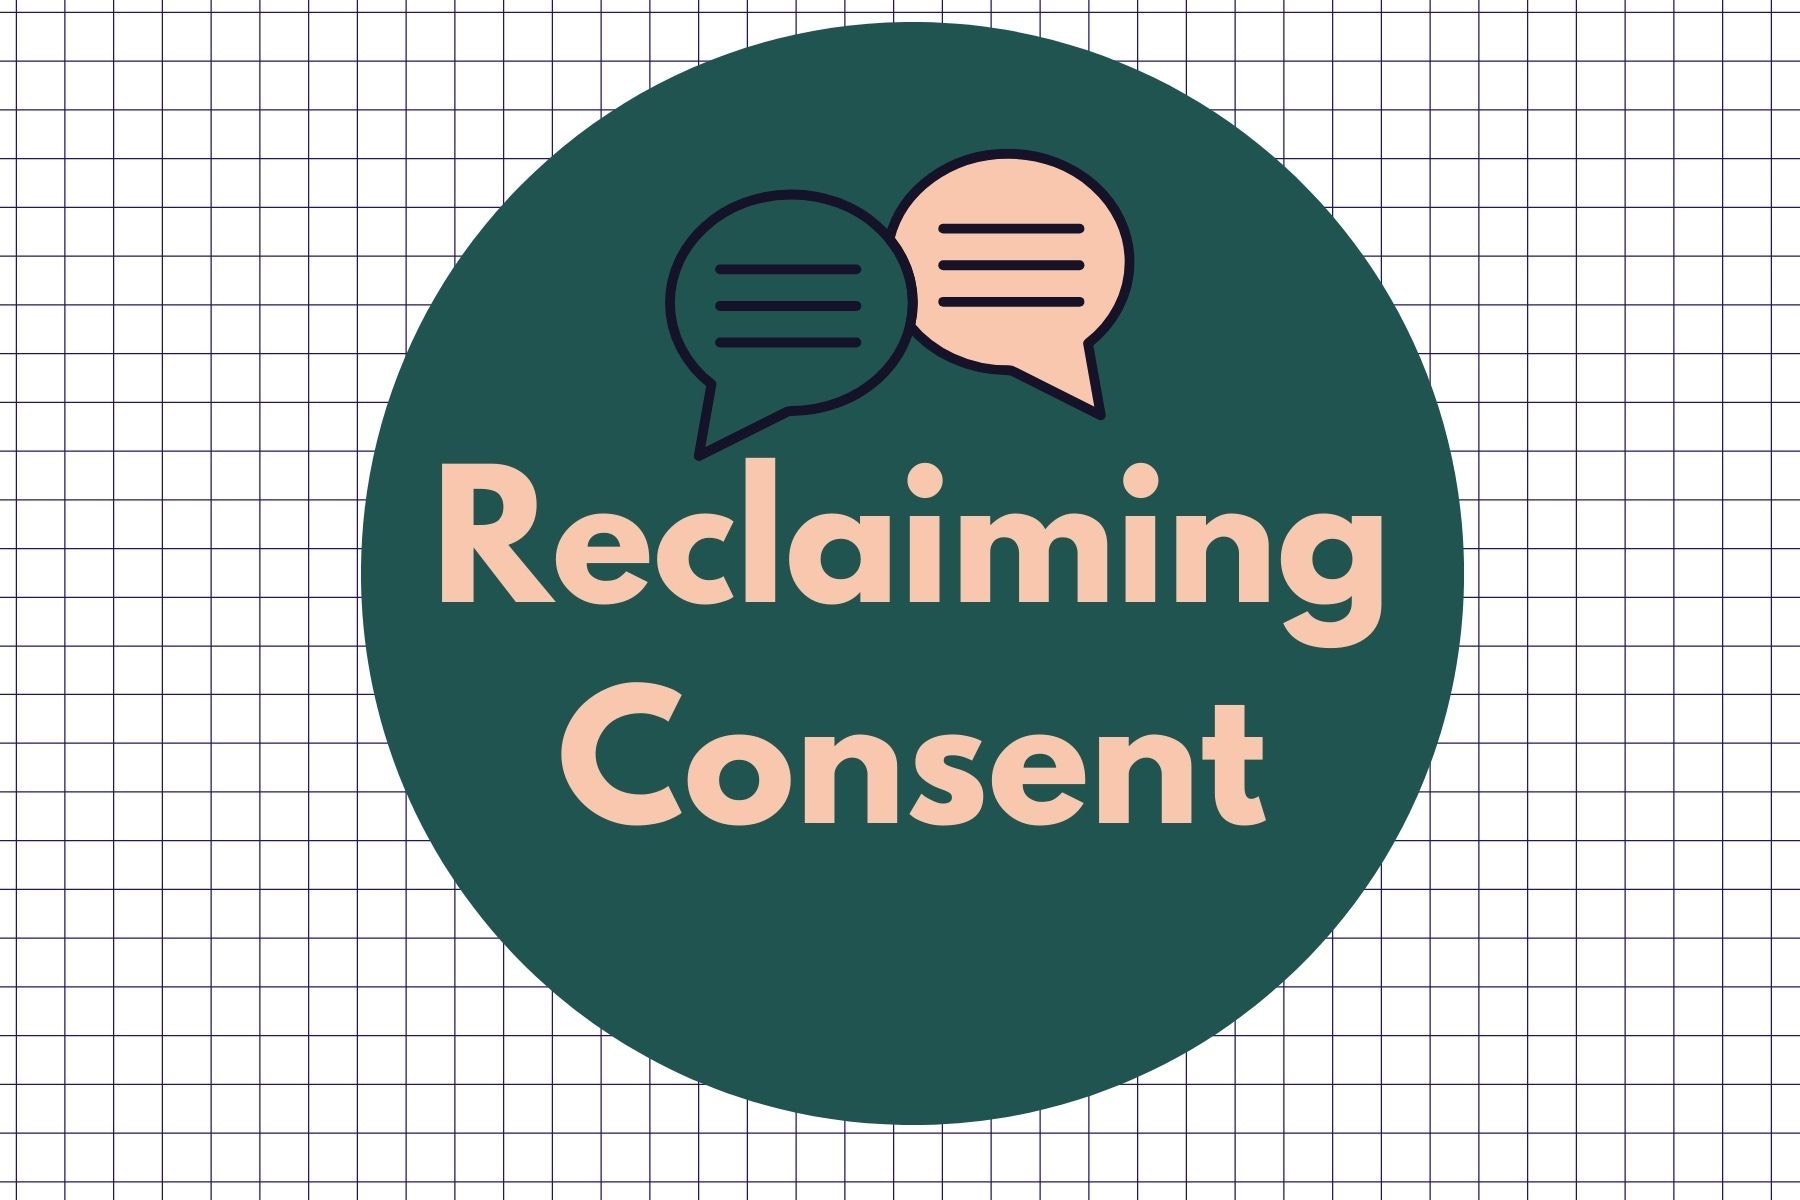 Reclaiming consent